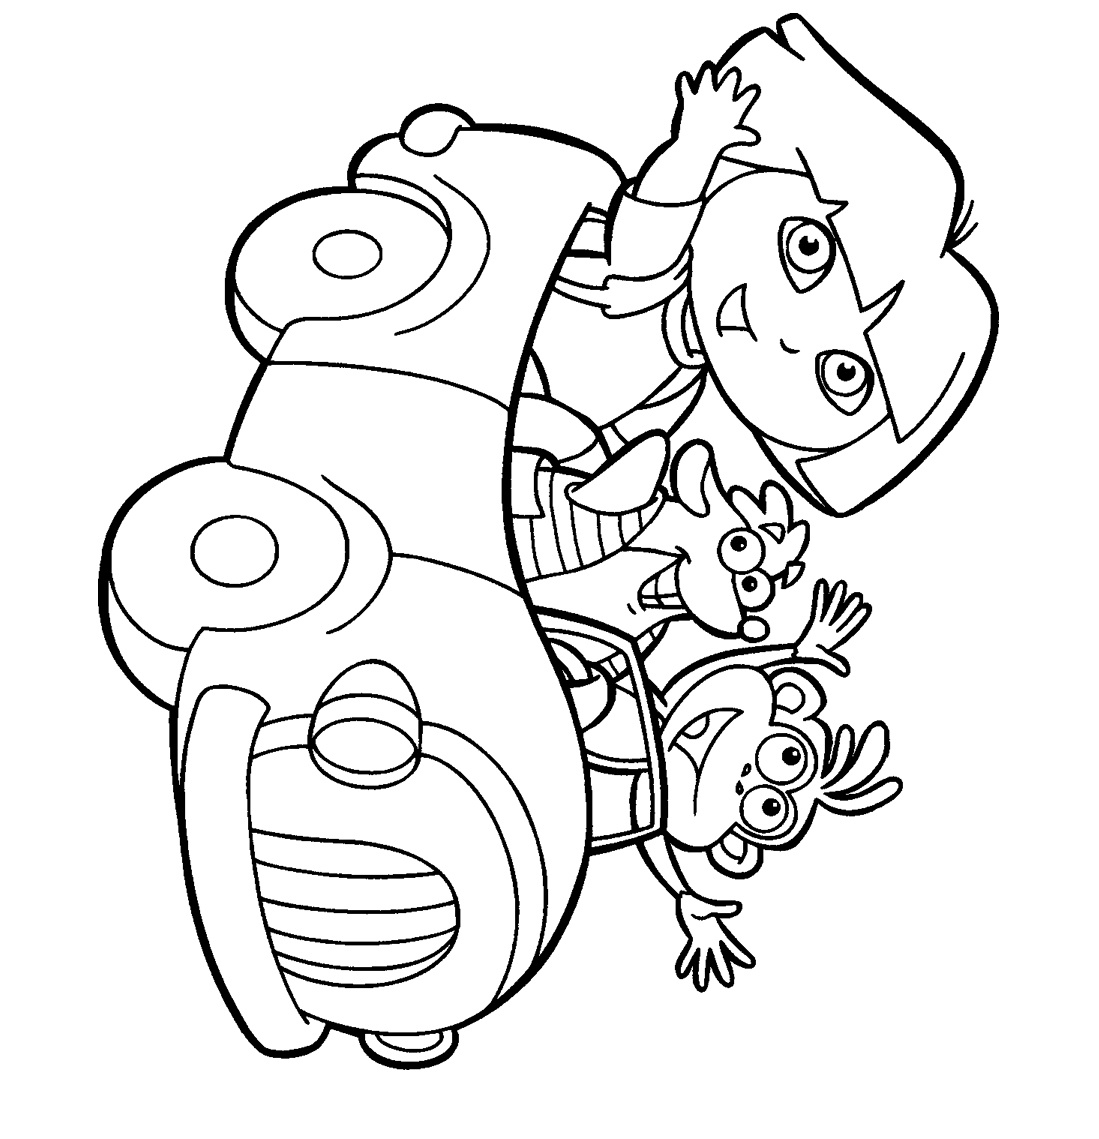 printable dora pictures free printable dora the explorer coloring pages for kids printable dora pictures